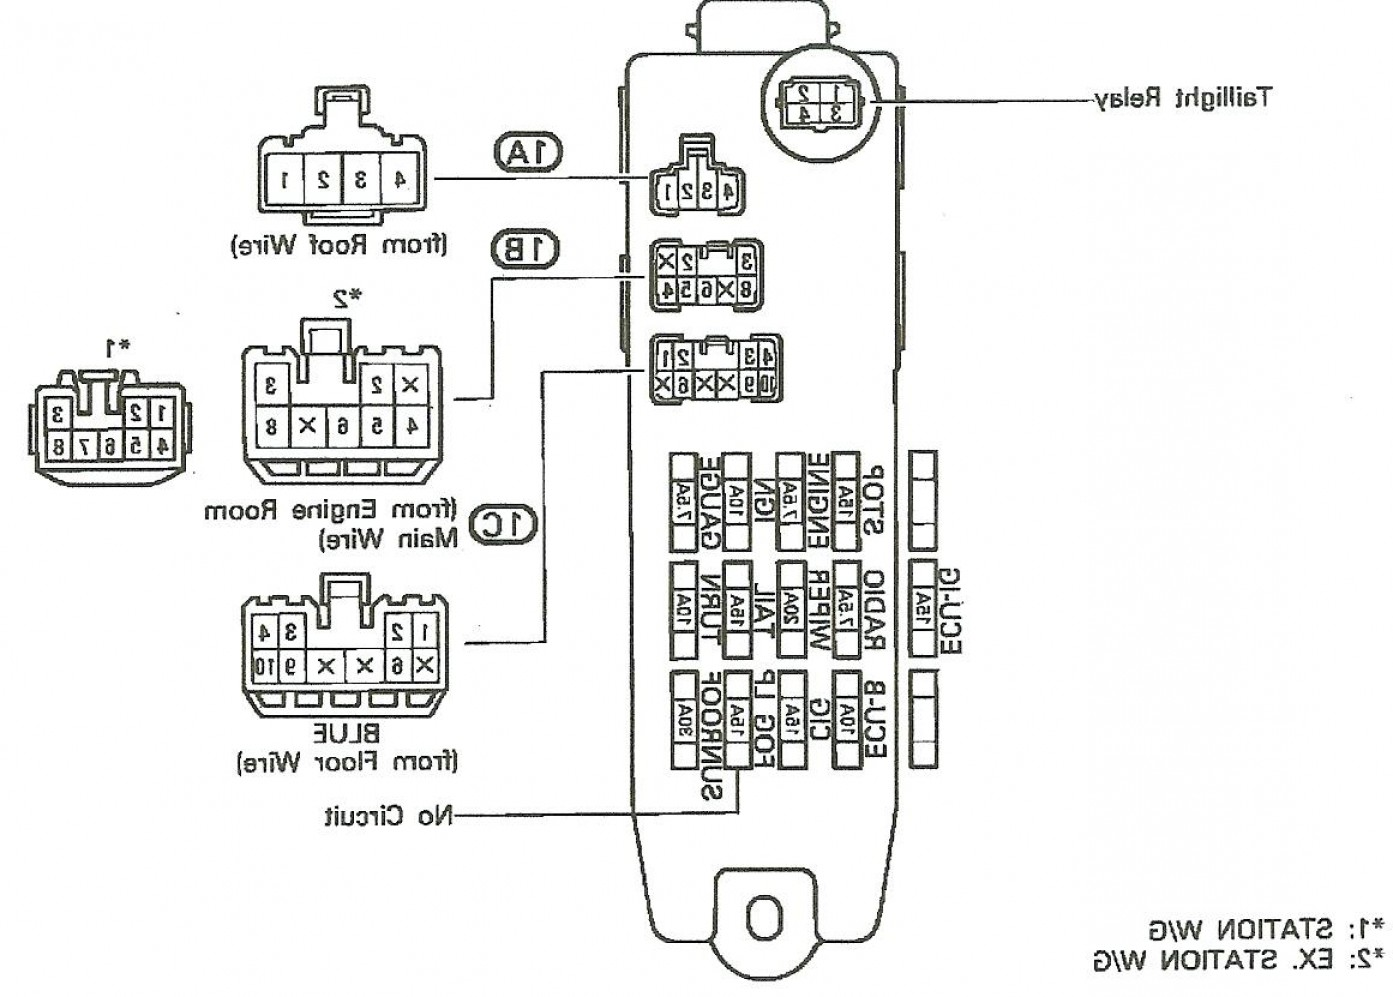 [DIAGRAM] 2013 Toyota Tacoma Radio Wiring Diagram Wiring